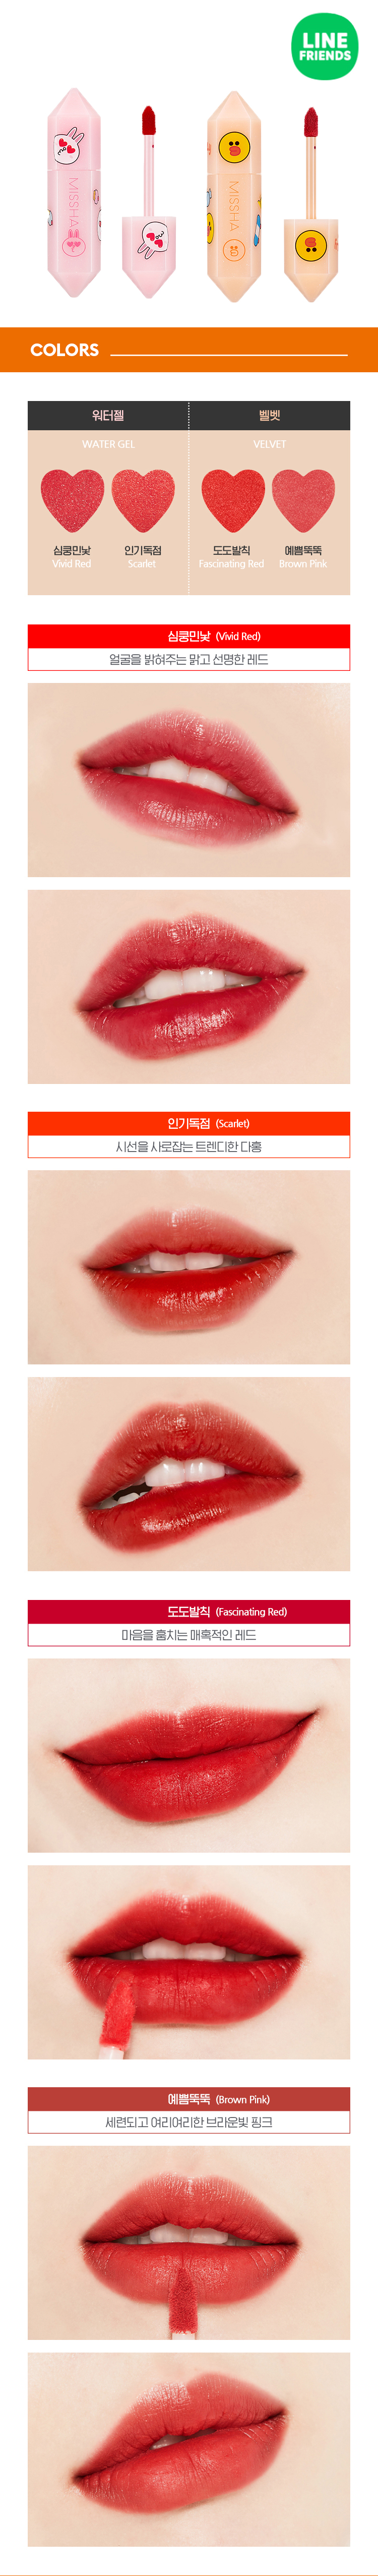 Details about [MISSHA] 2018 New LINE Friends Edition Wish Stone Lip Tint /  Water Gel, Velvet